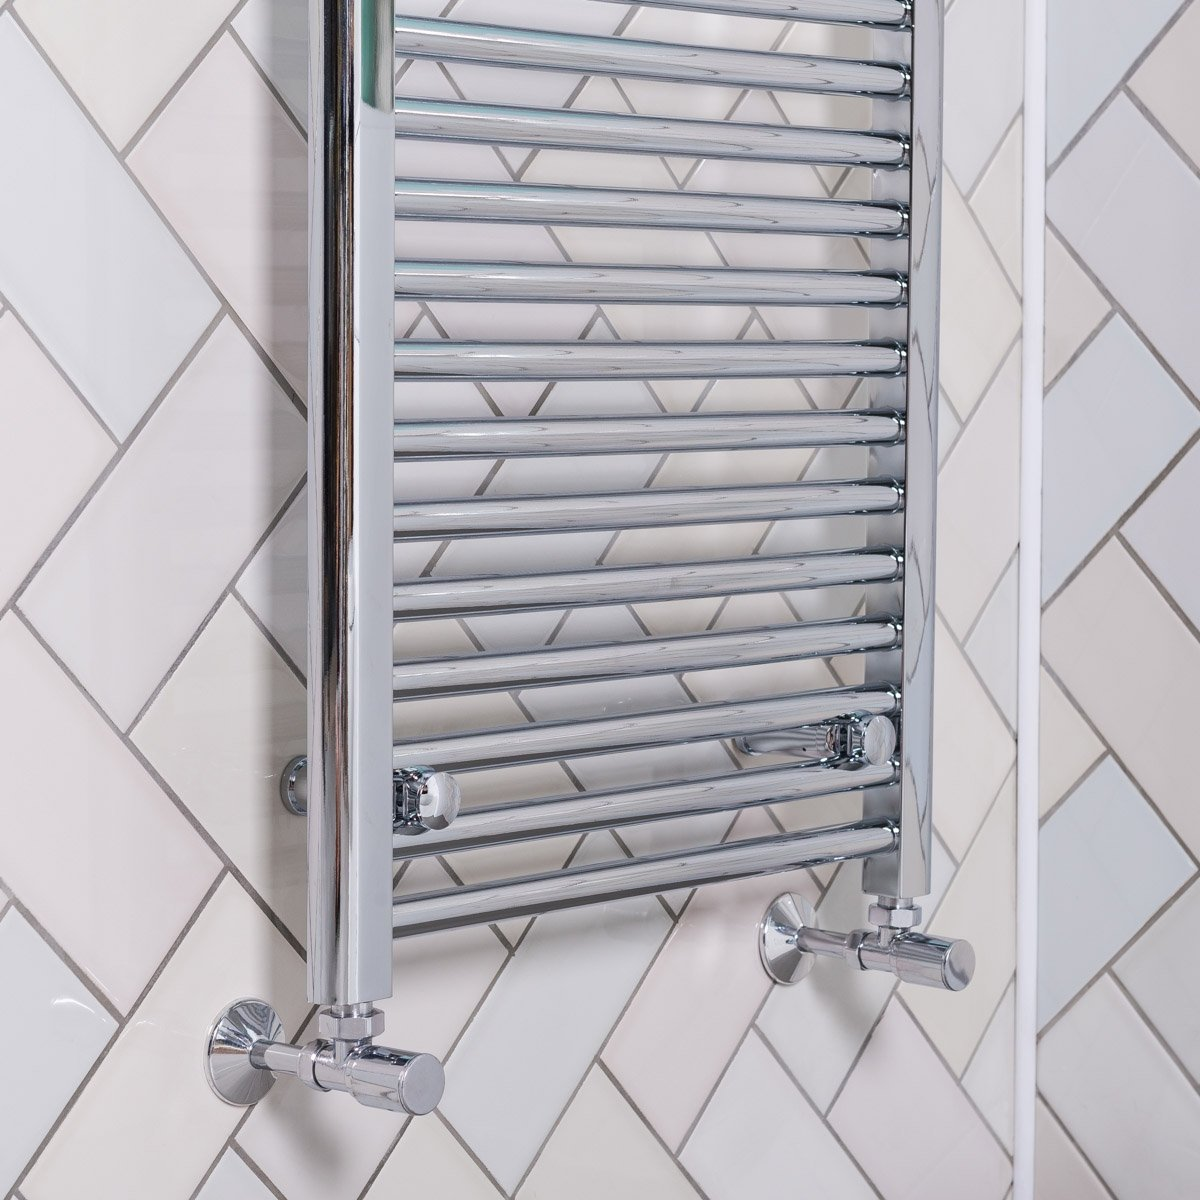 Ladder Heated Towel Rails: Bathroom Heated Towel Rail Radiator Chrome Straight Ladder